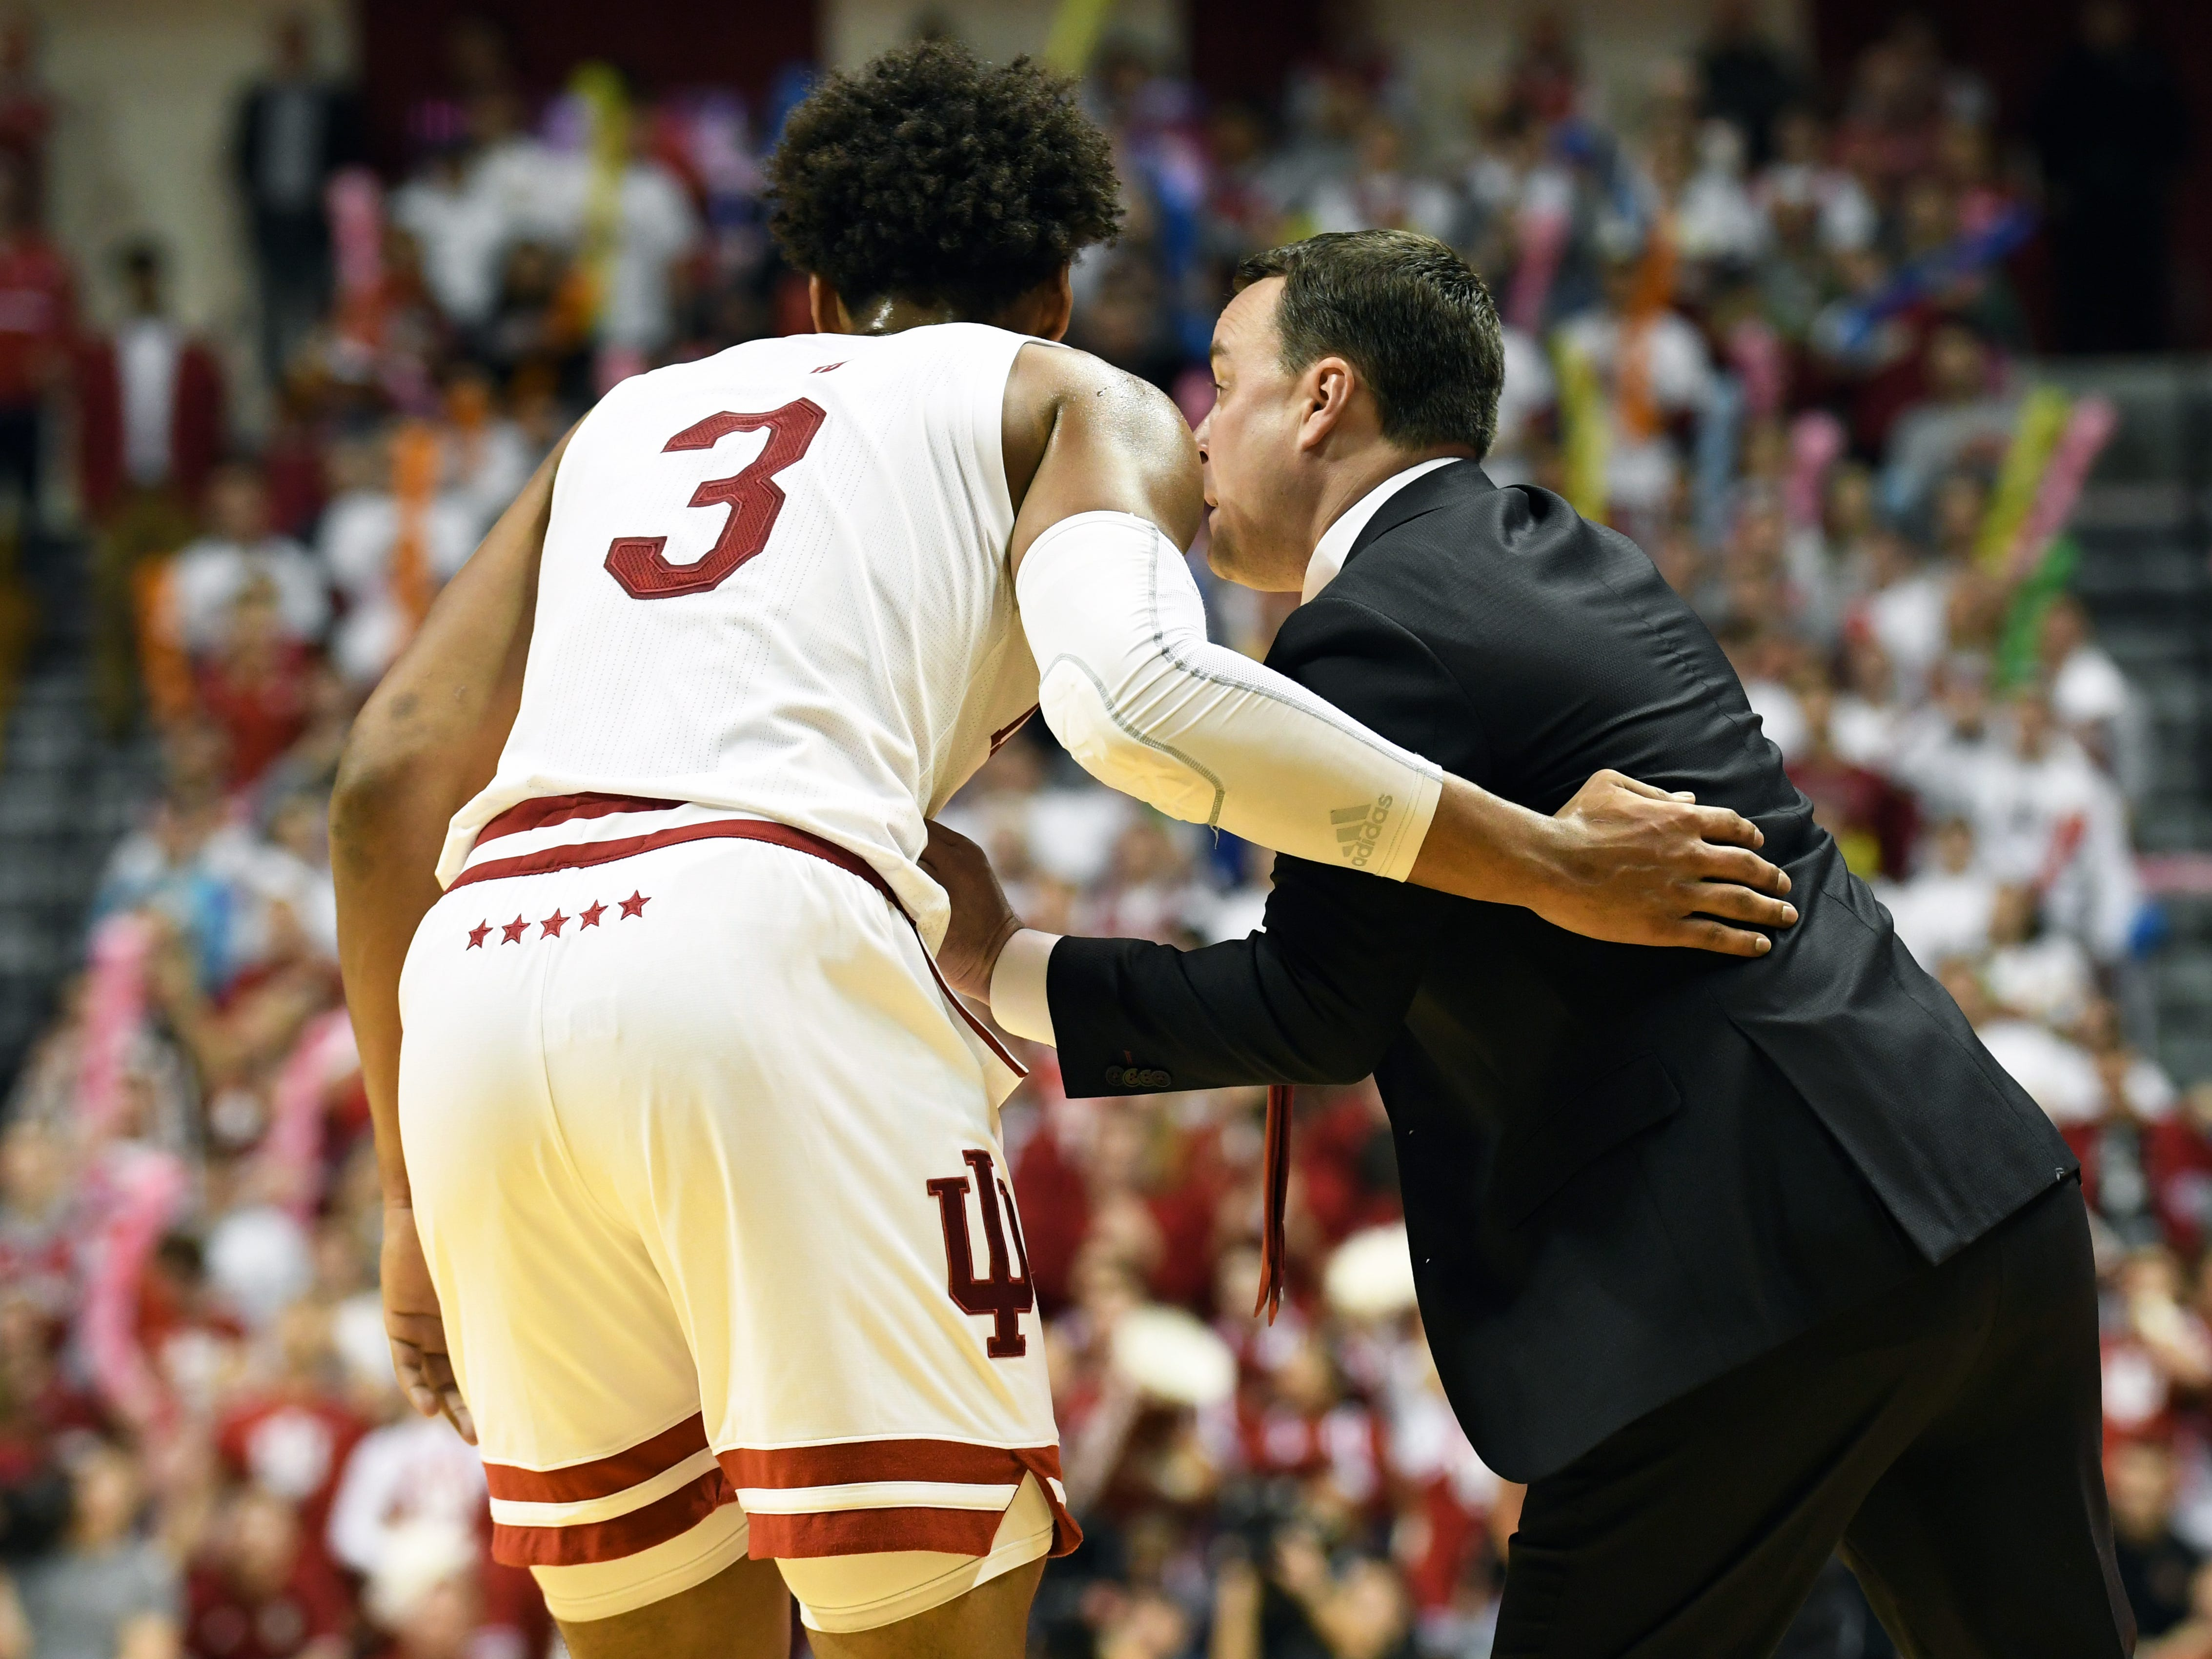 Indiana Hoosiers forward Justin Smith (3) talks to Indiana Hoosiers head coach Archie Miller during the game against Louisville at Simon Skjodt Assembly Hall in Bloomington, Ind.